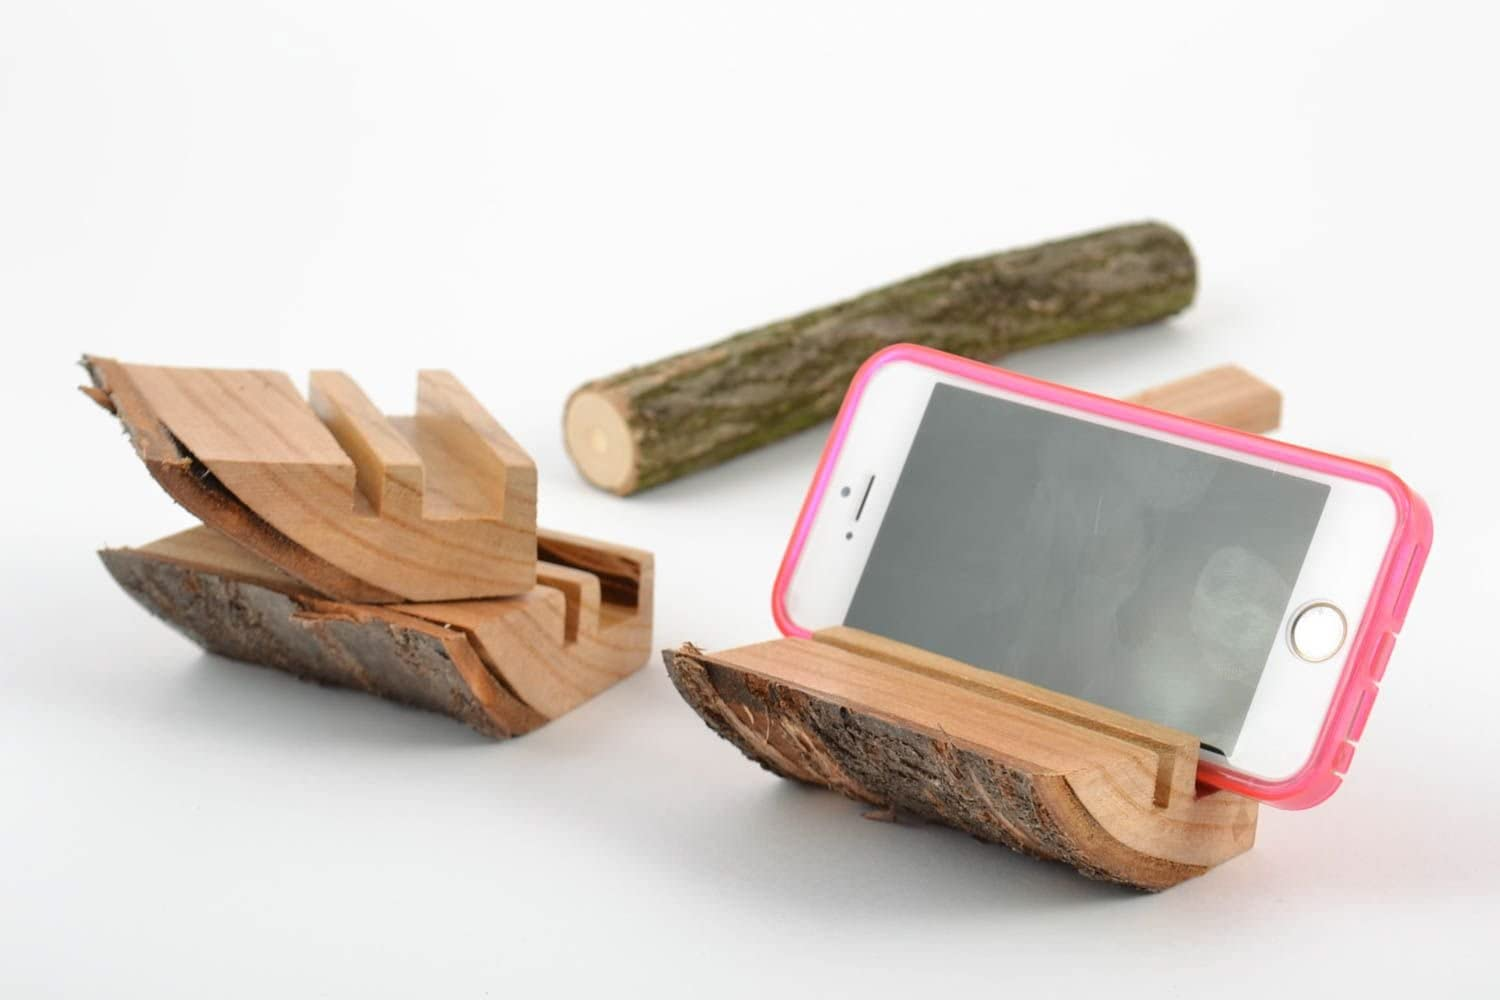 Set Of 3 Small Handmade Designer Desktop Cell Phone Stands Cut Out Of Wood